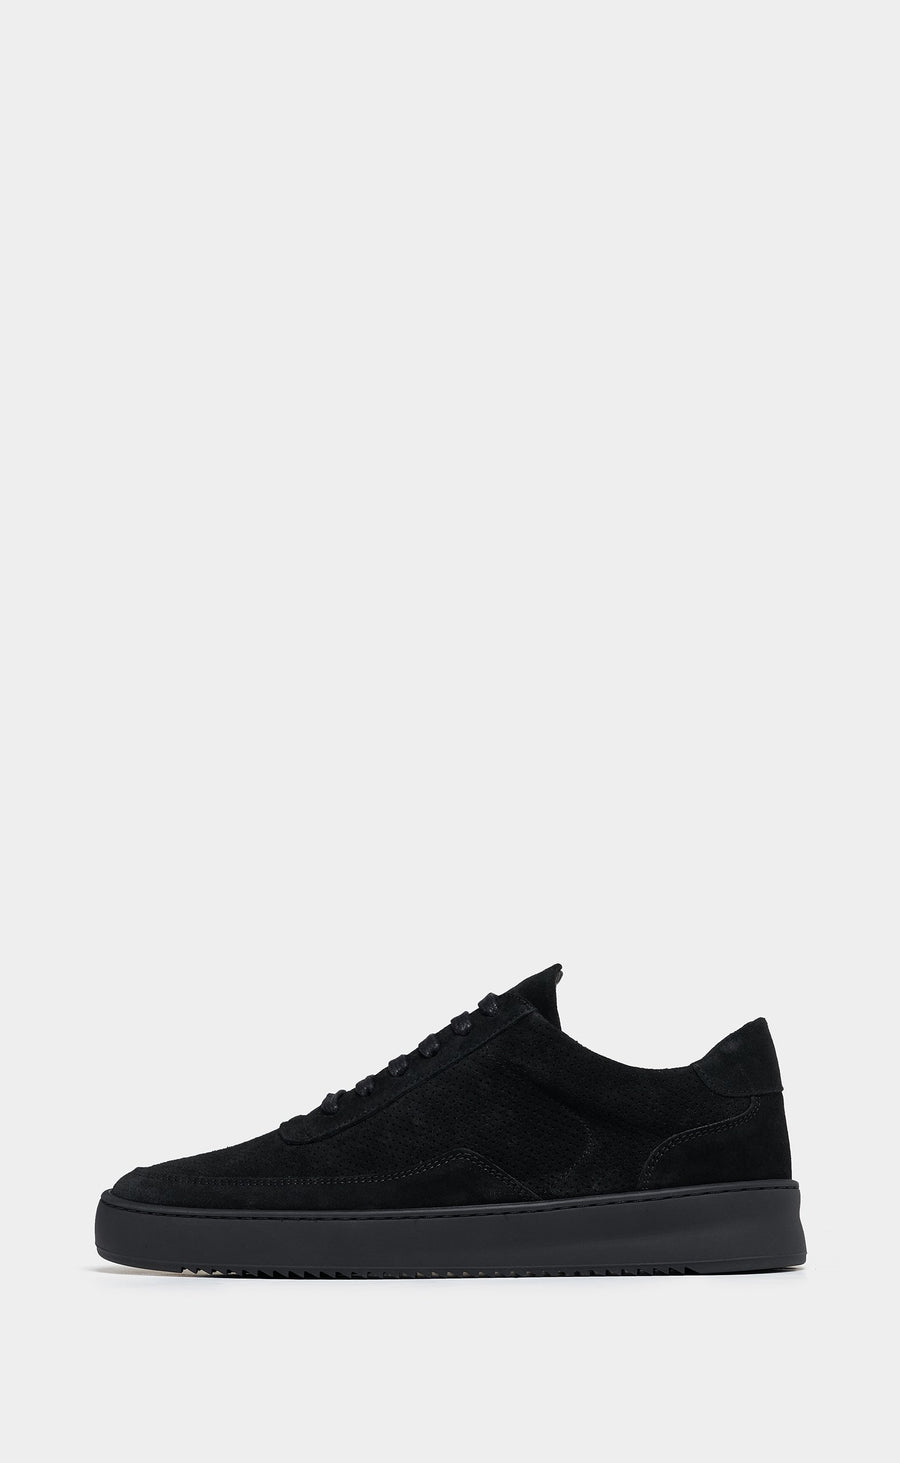 Low Mondo Ripple Suede Perforated All Black